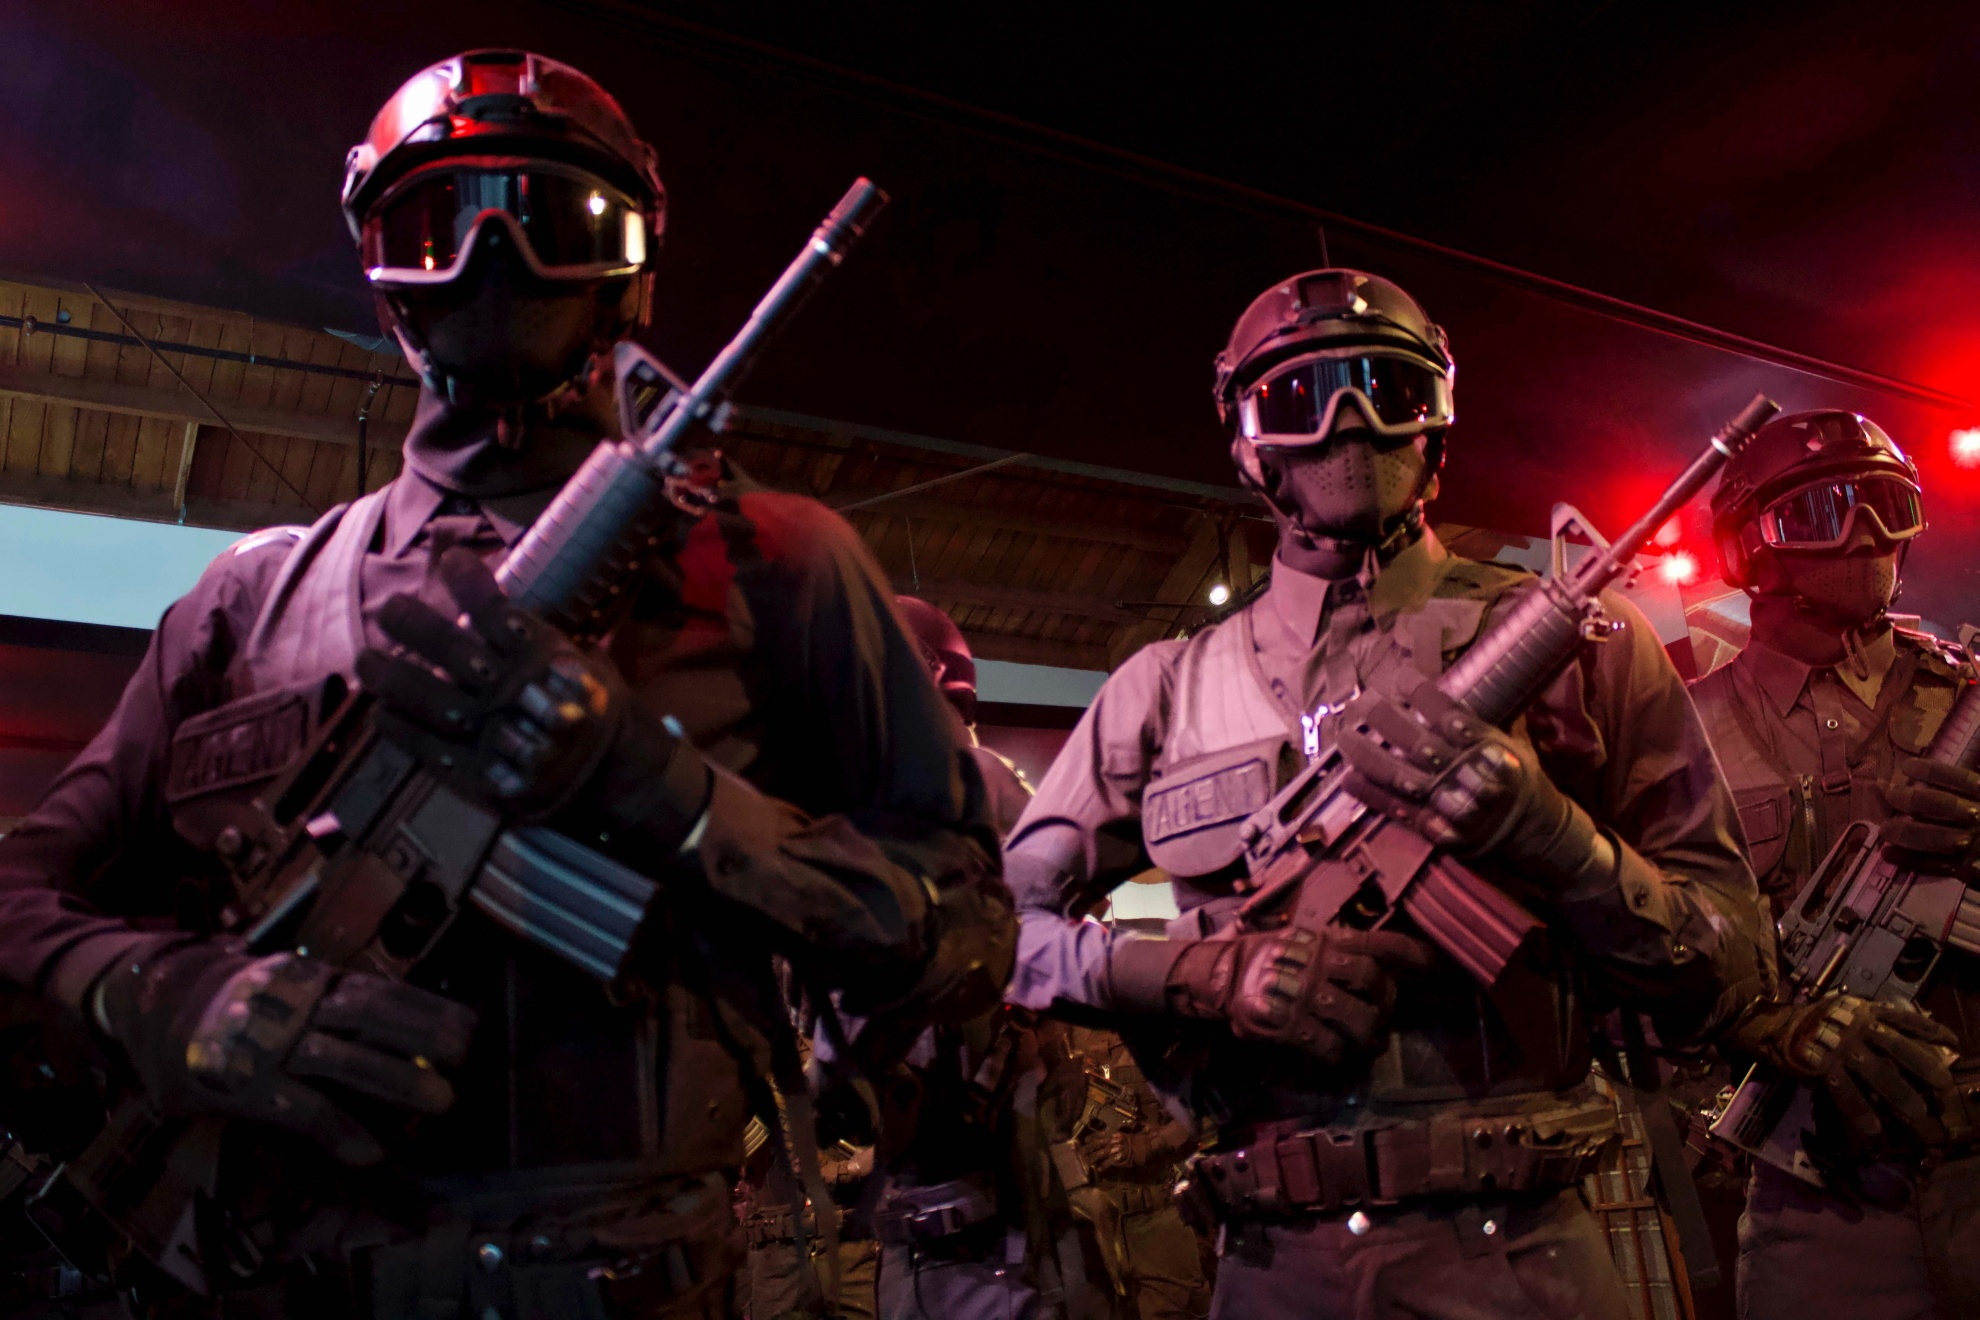 FBI Says Swatters Now Hack into Smart Devices to Live-Stream SWAT Intervention